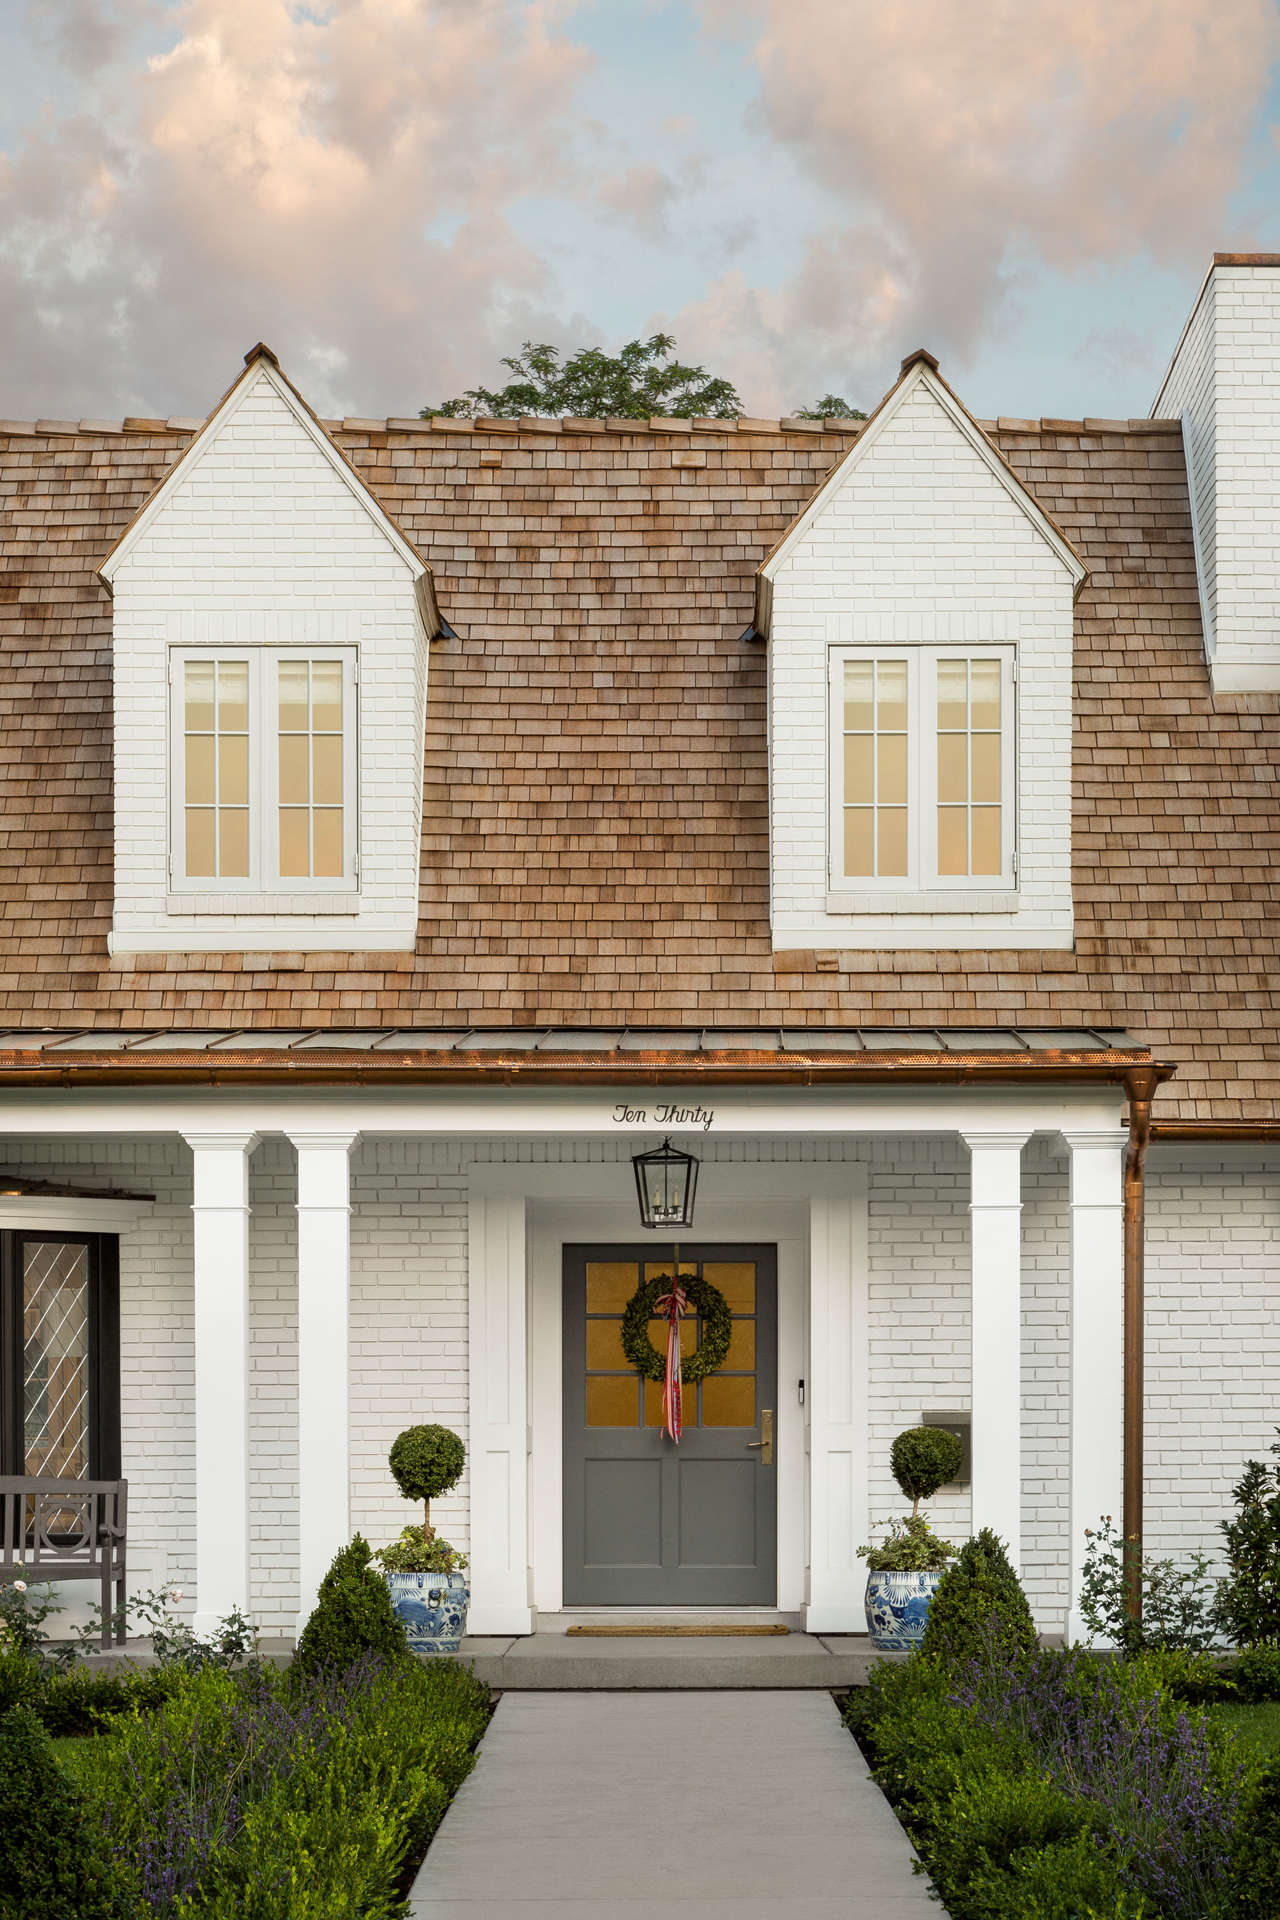 Classic Tudor exterior with white brick. The Fox Group. #houseexterior #tudor #classic